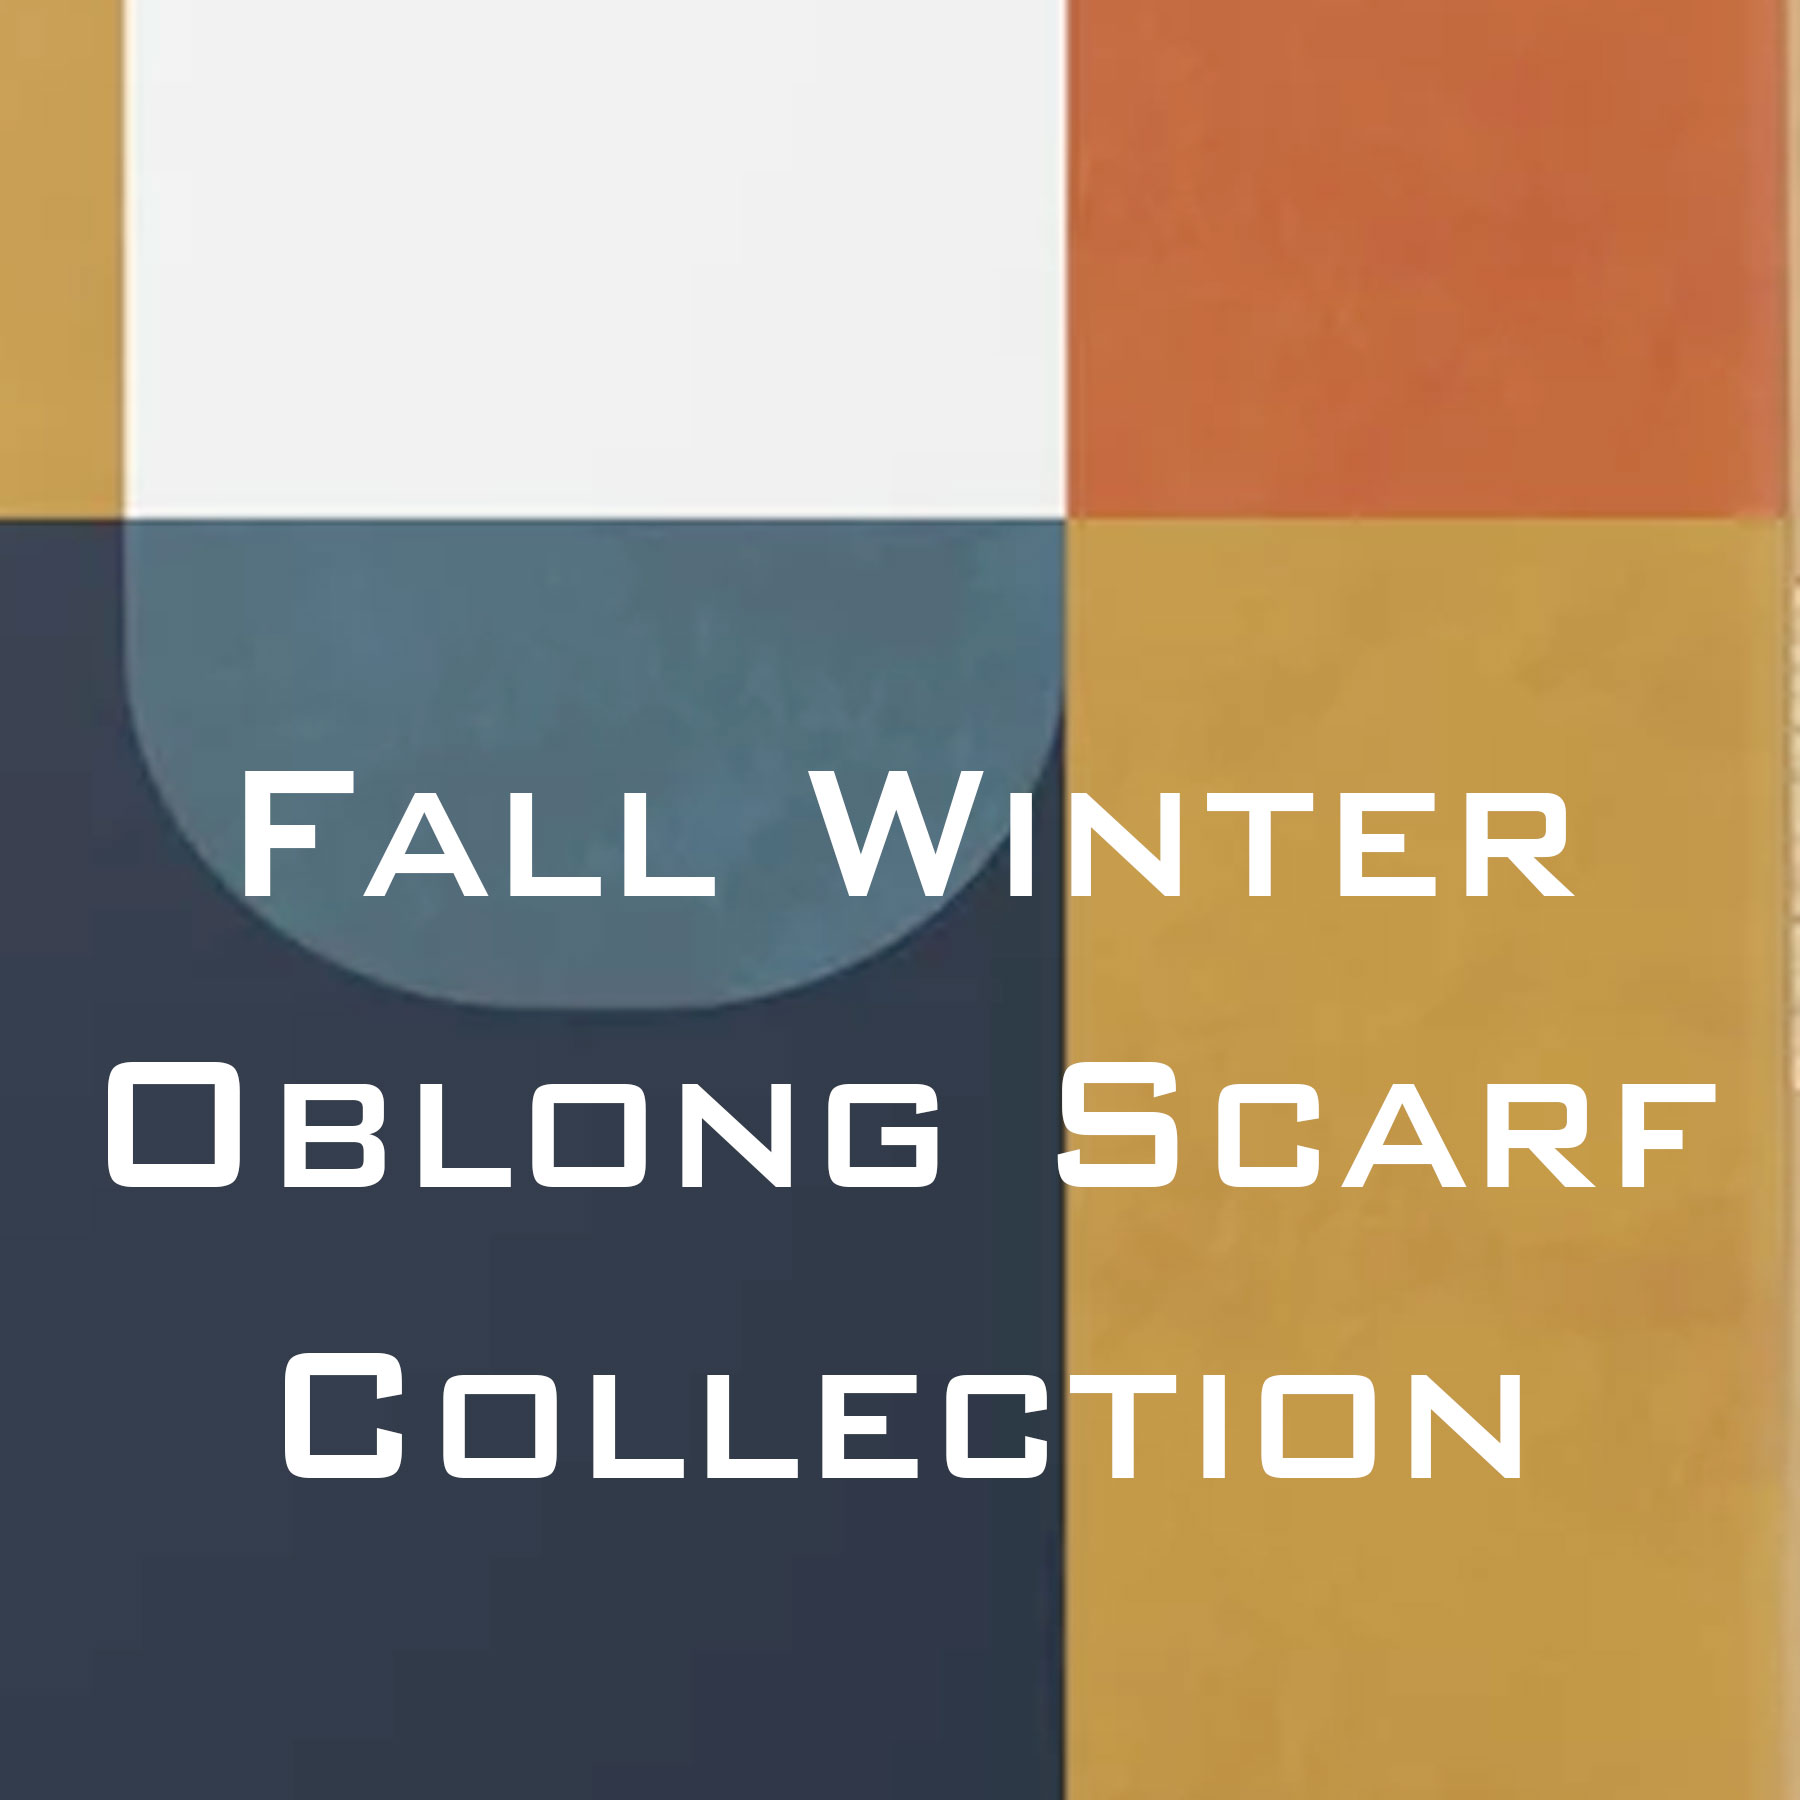 Wholesale Fall and Winter Oblong Scarves